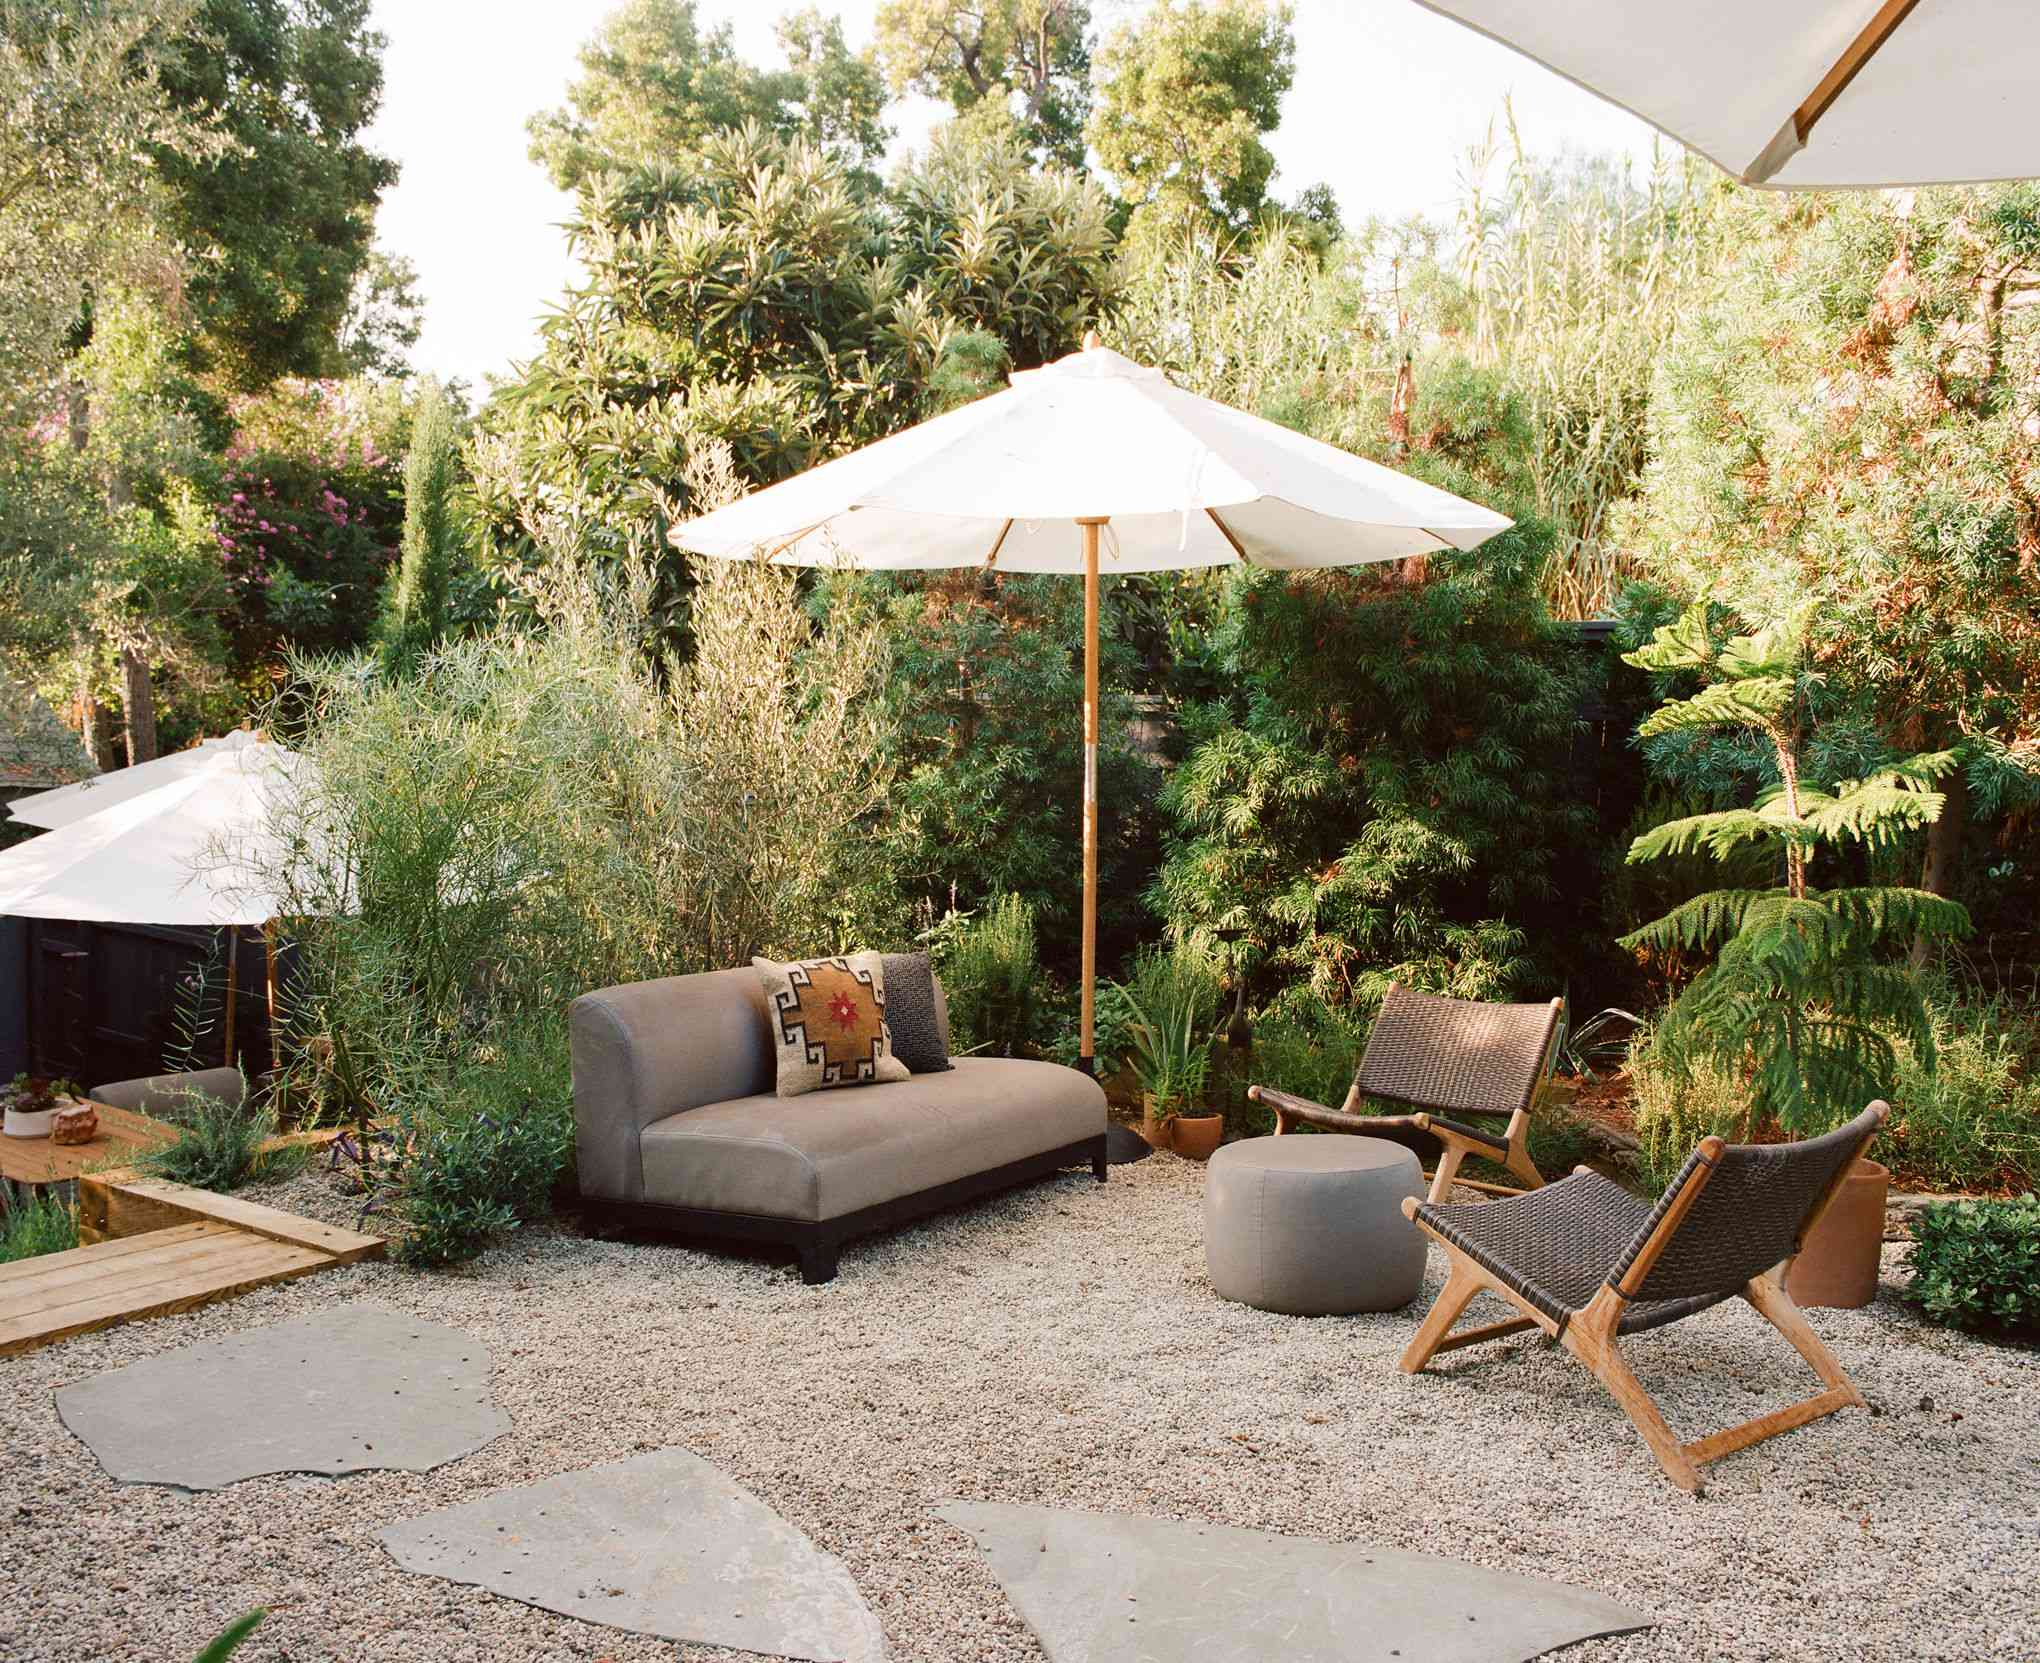 Outdoor patio with gravel